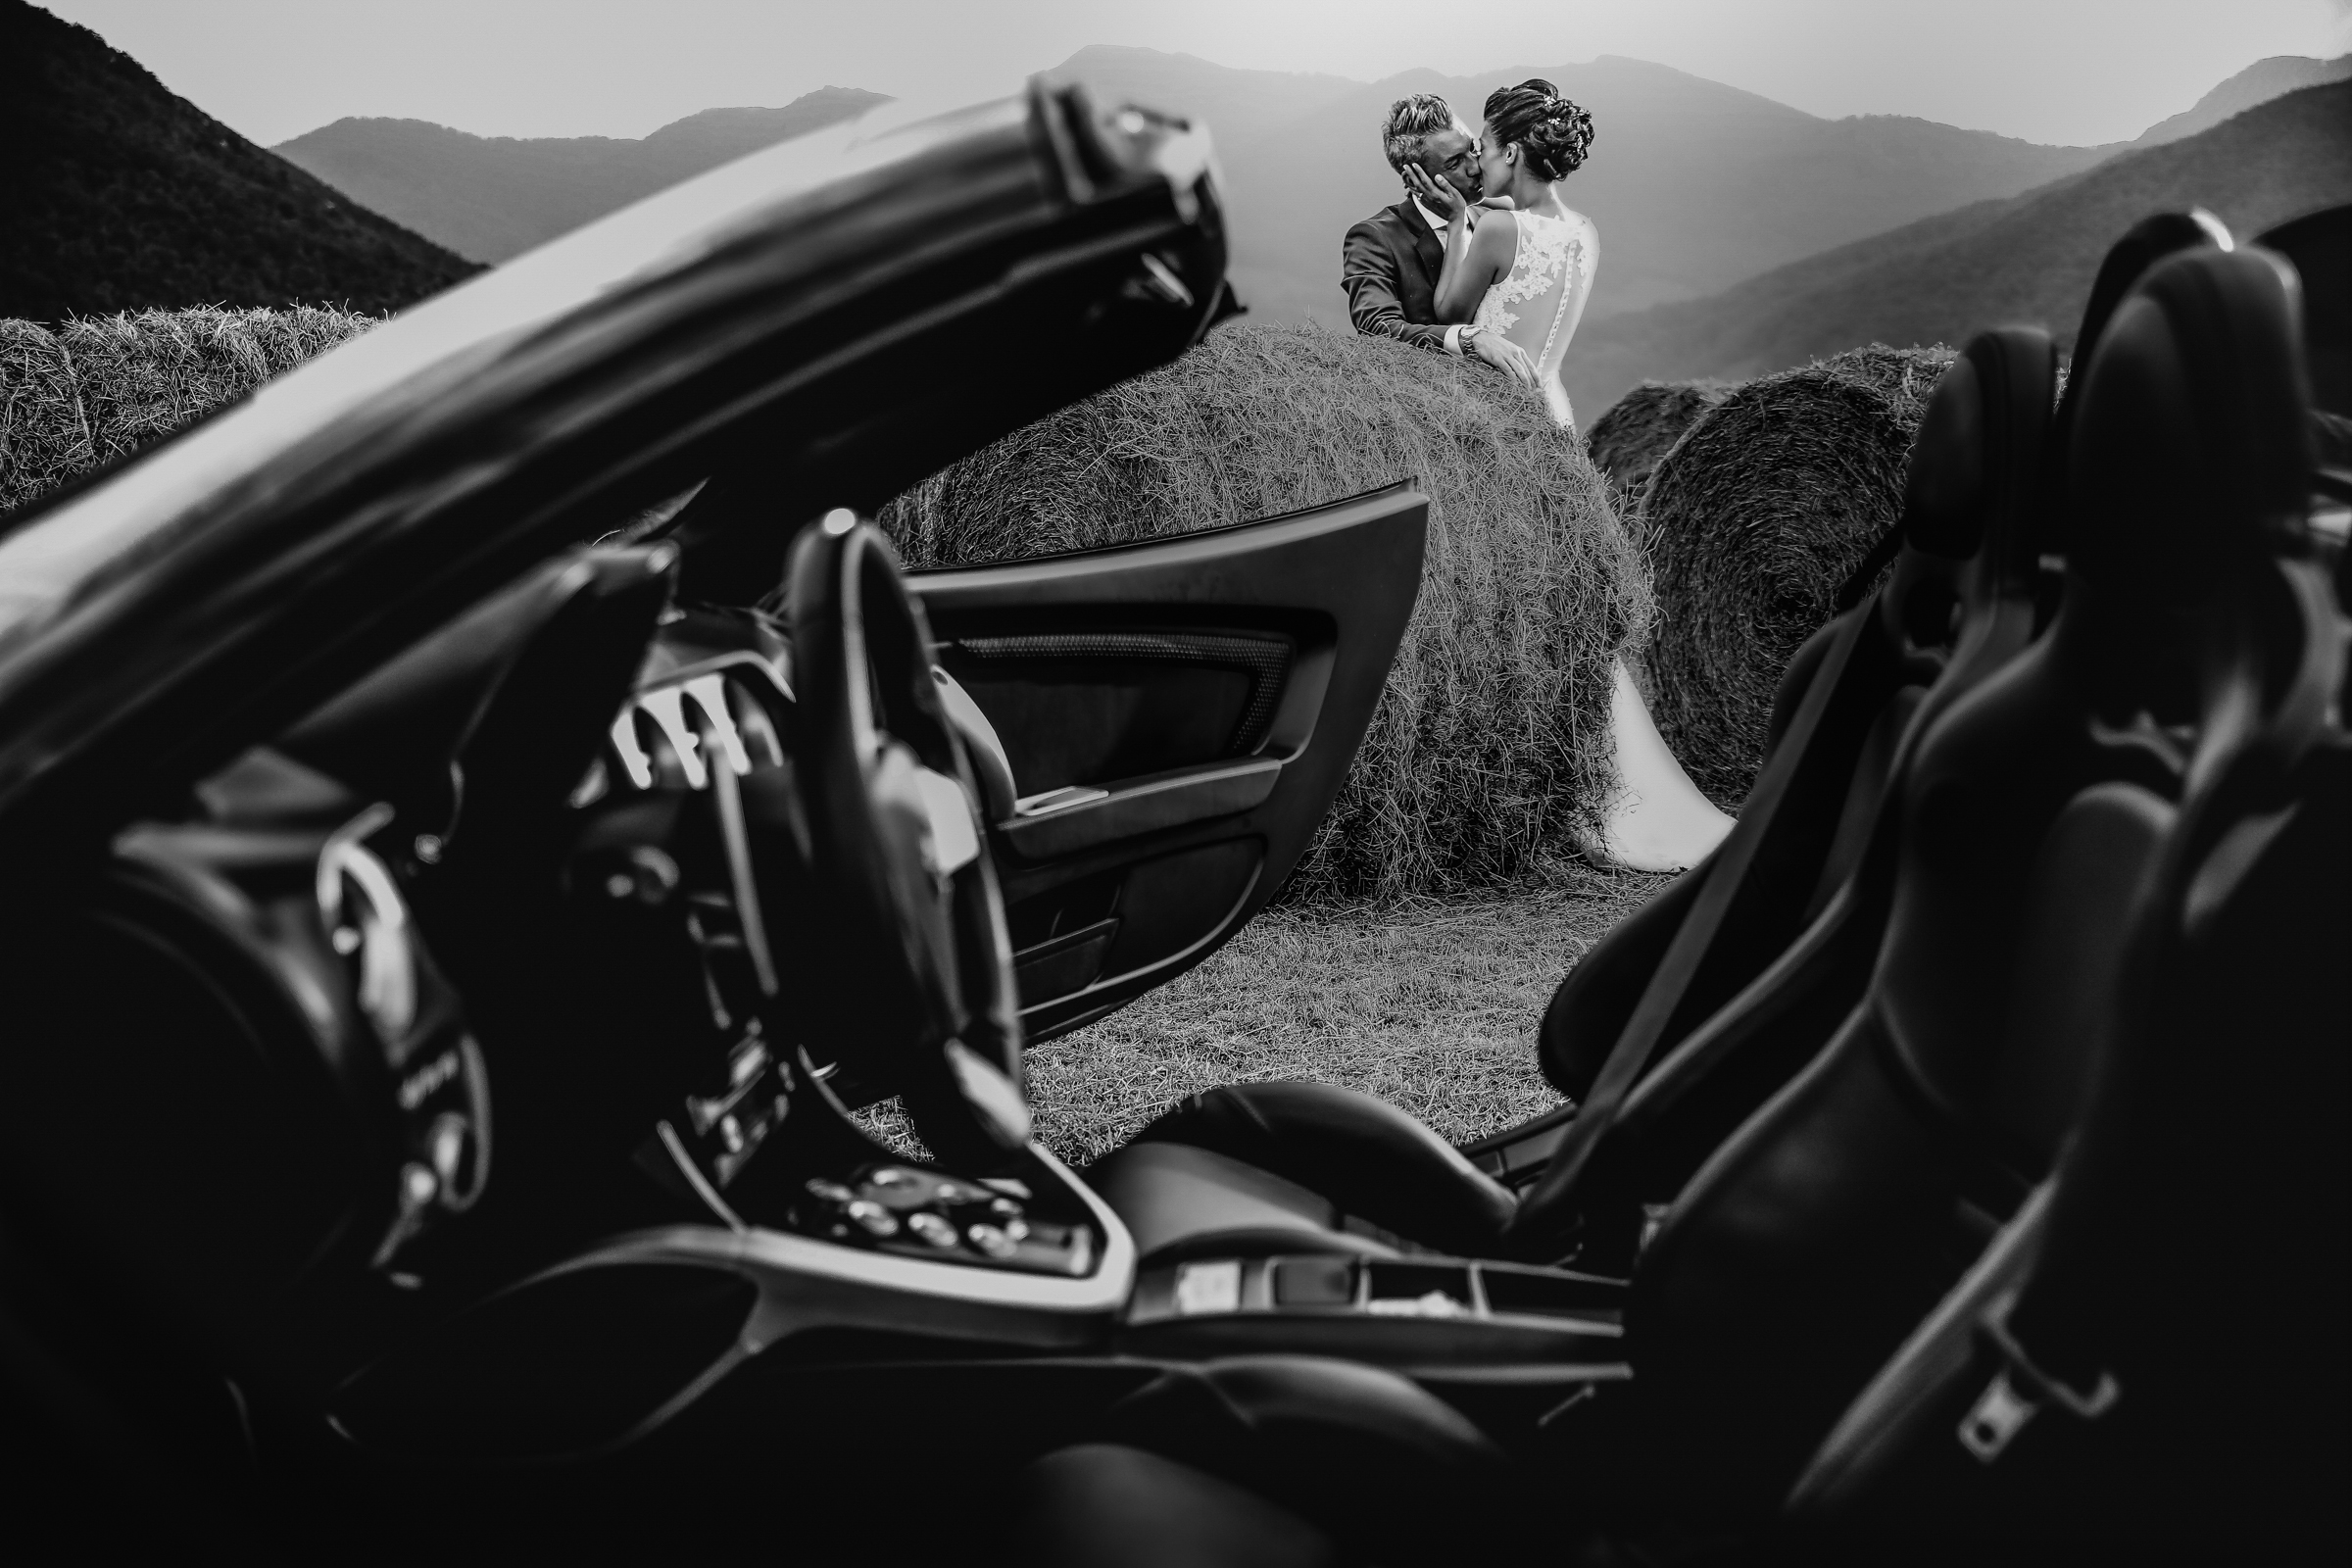 Couple against car and mountains - photo by Julien Laurent-Georges